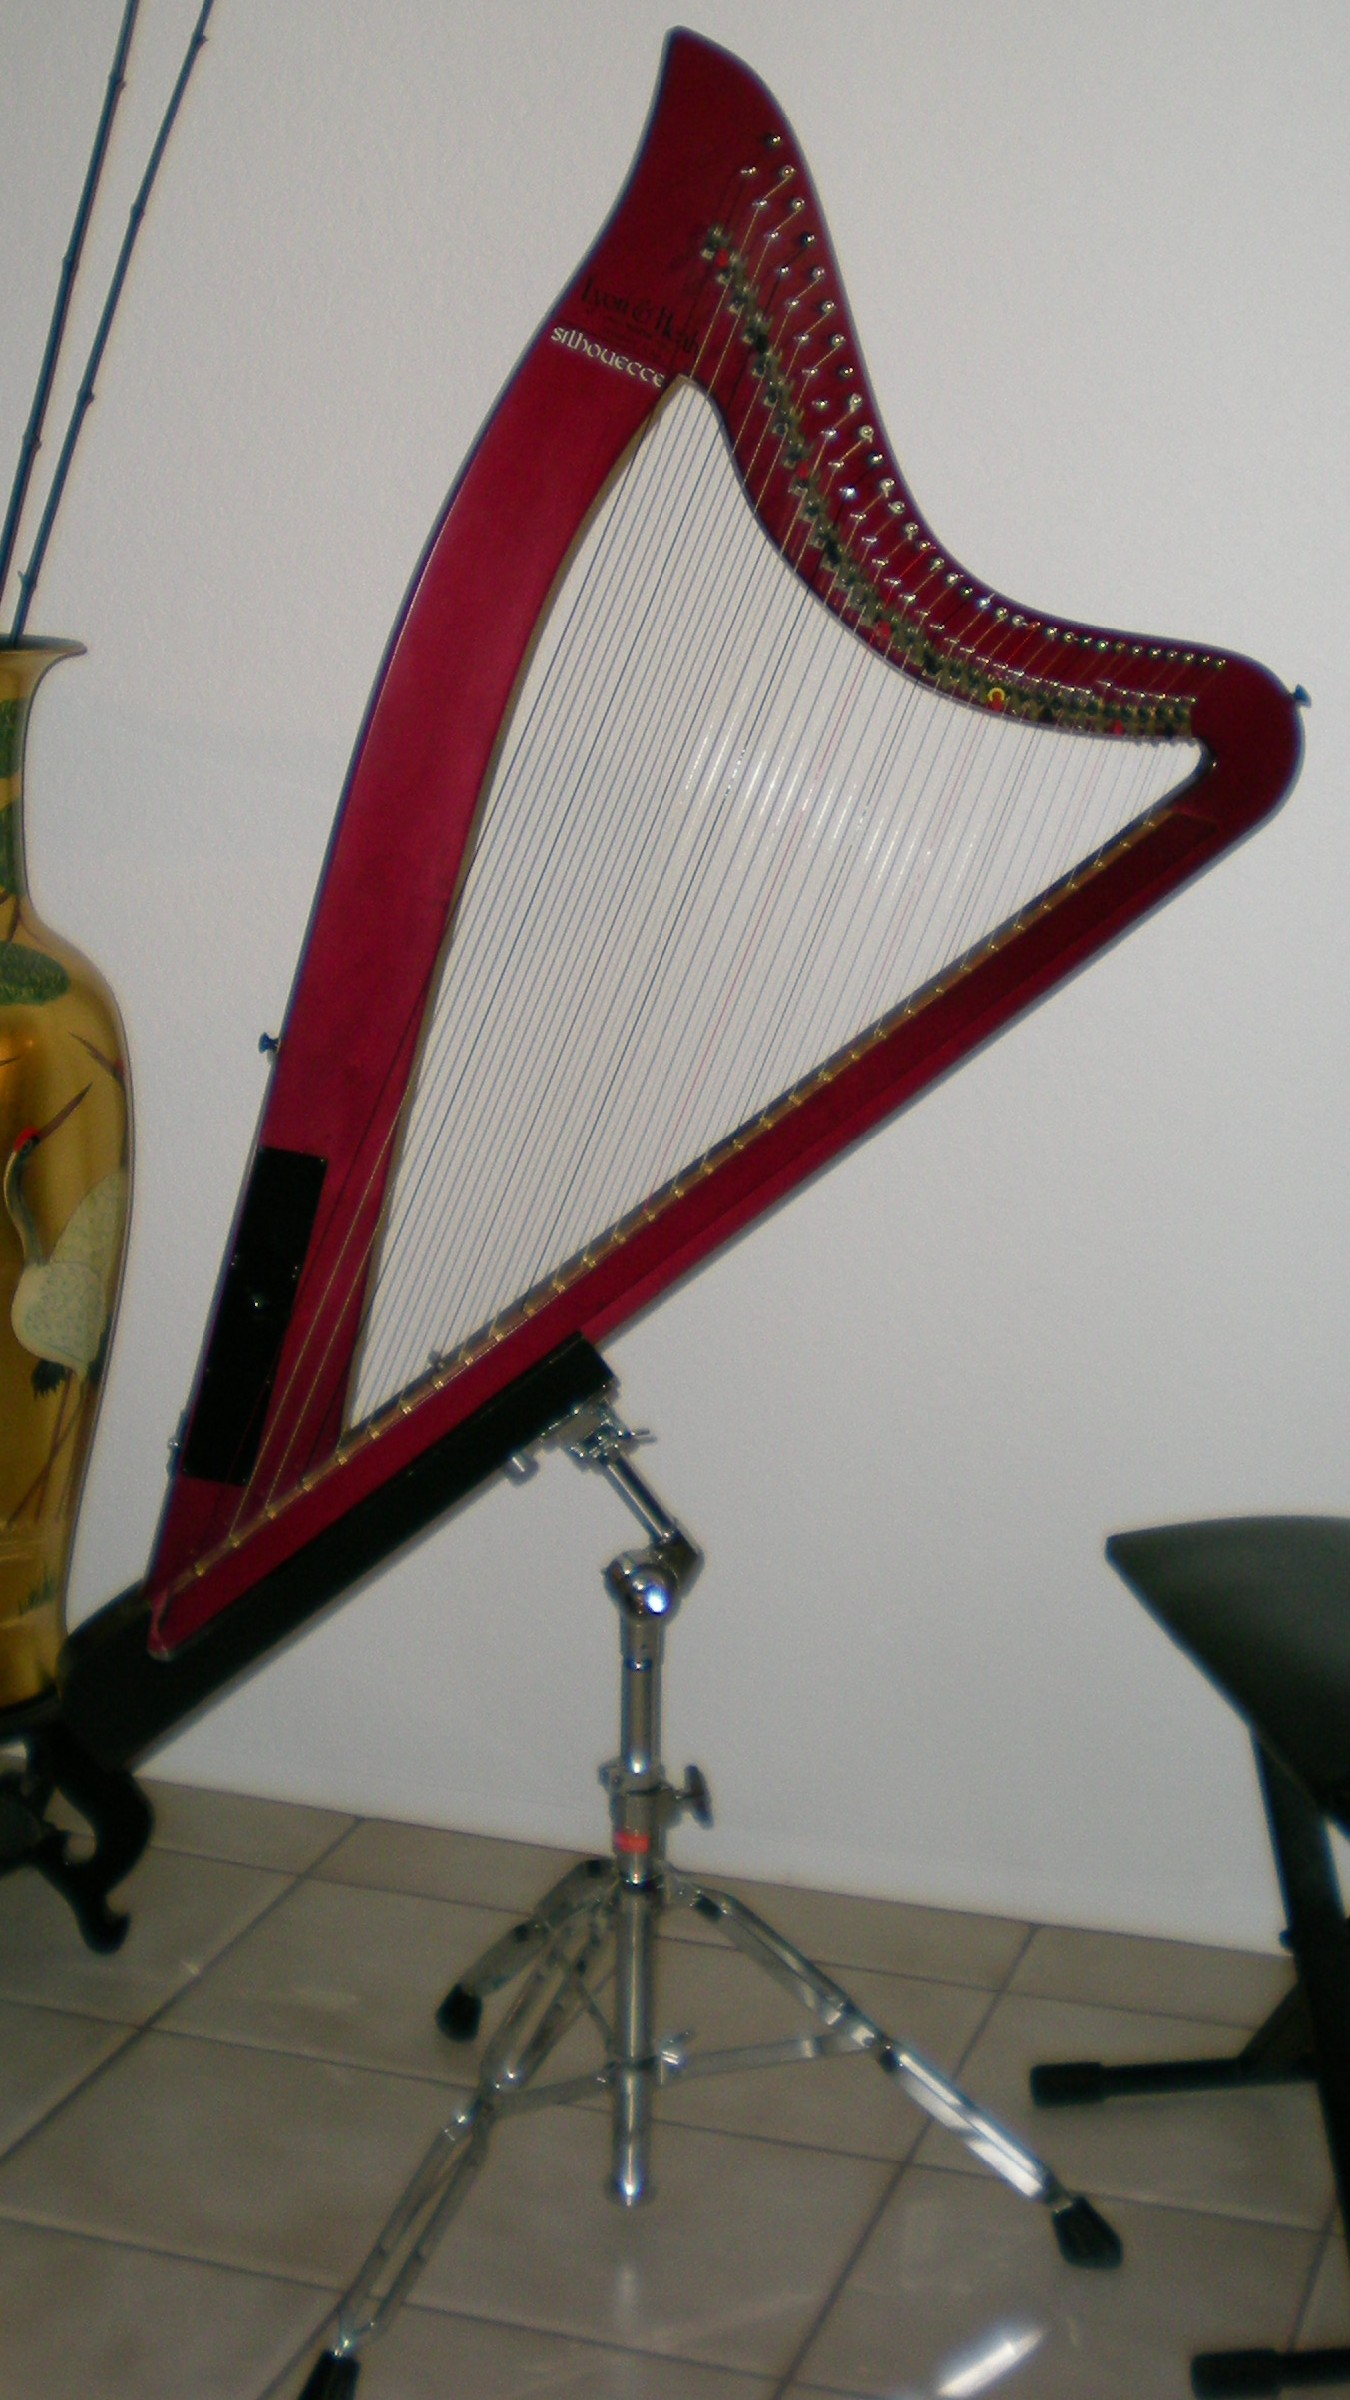 Lyon and Healy Silhouette for sale - Harp Column